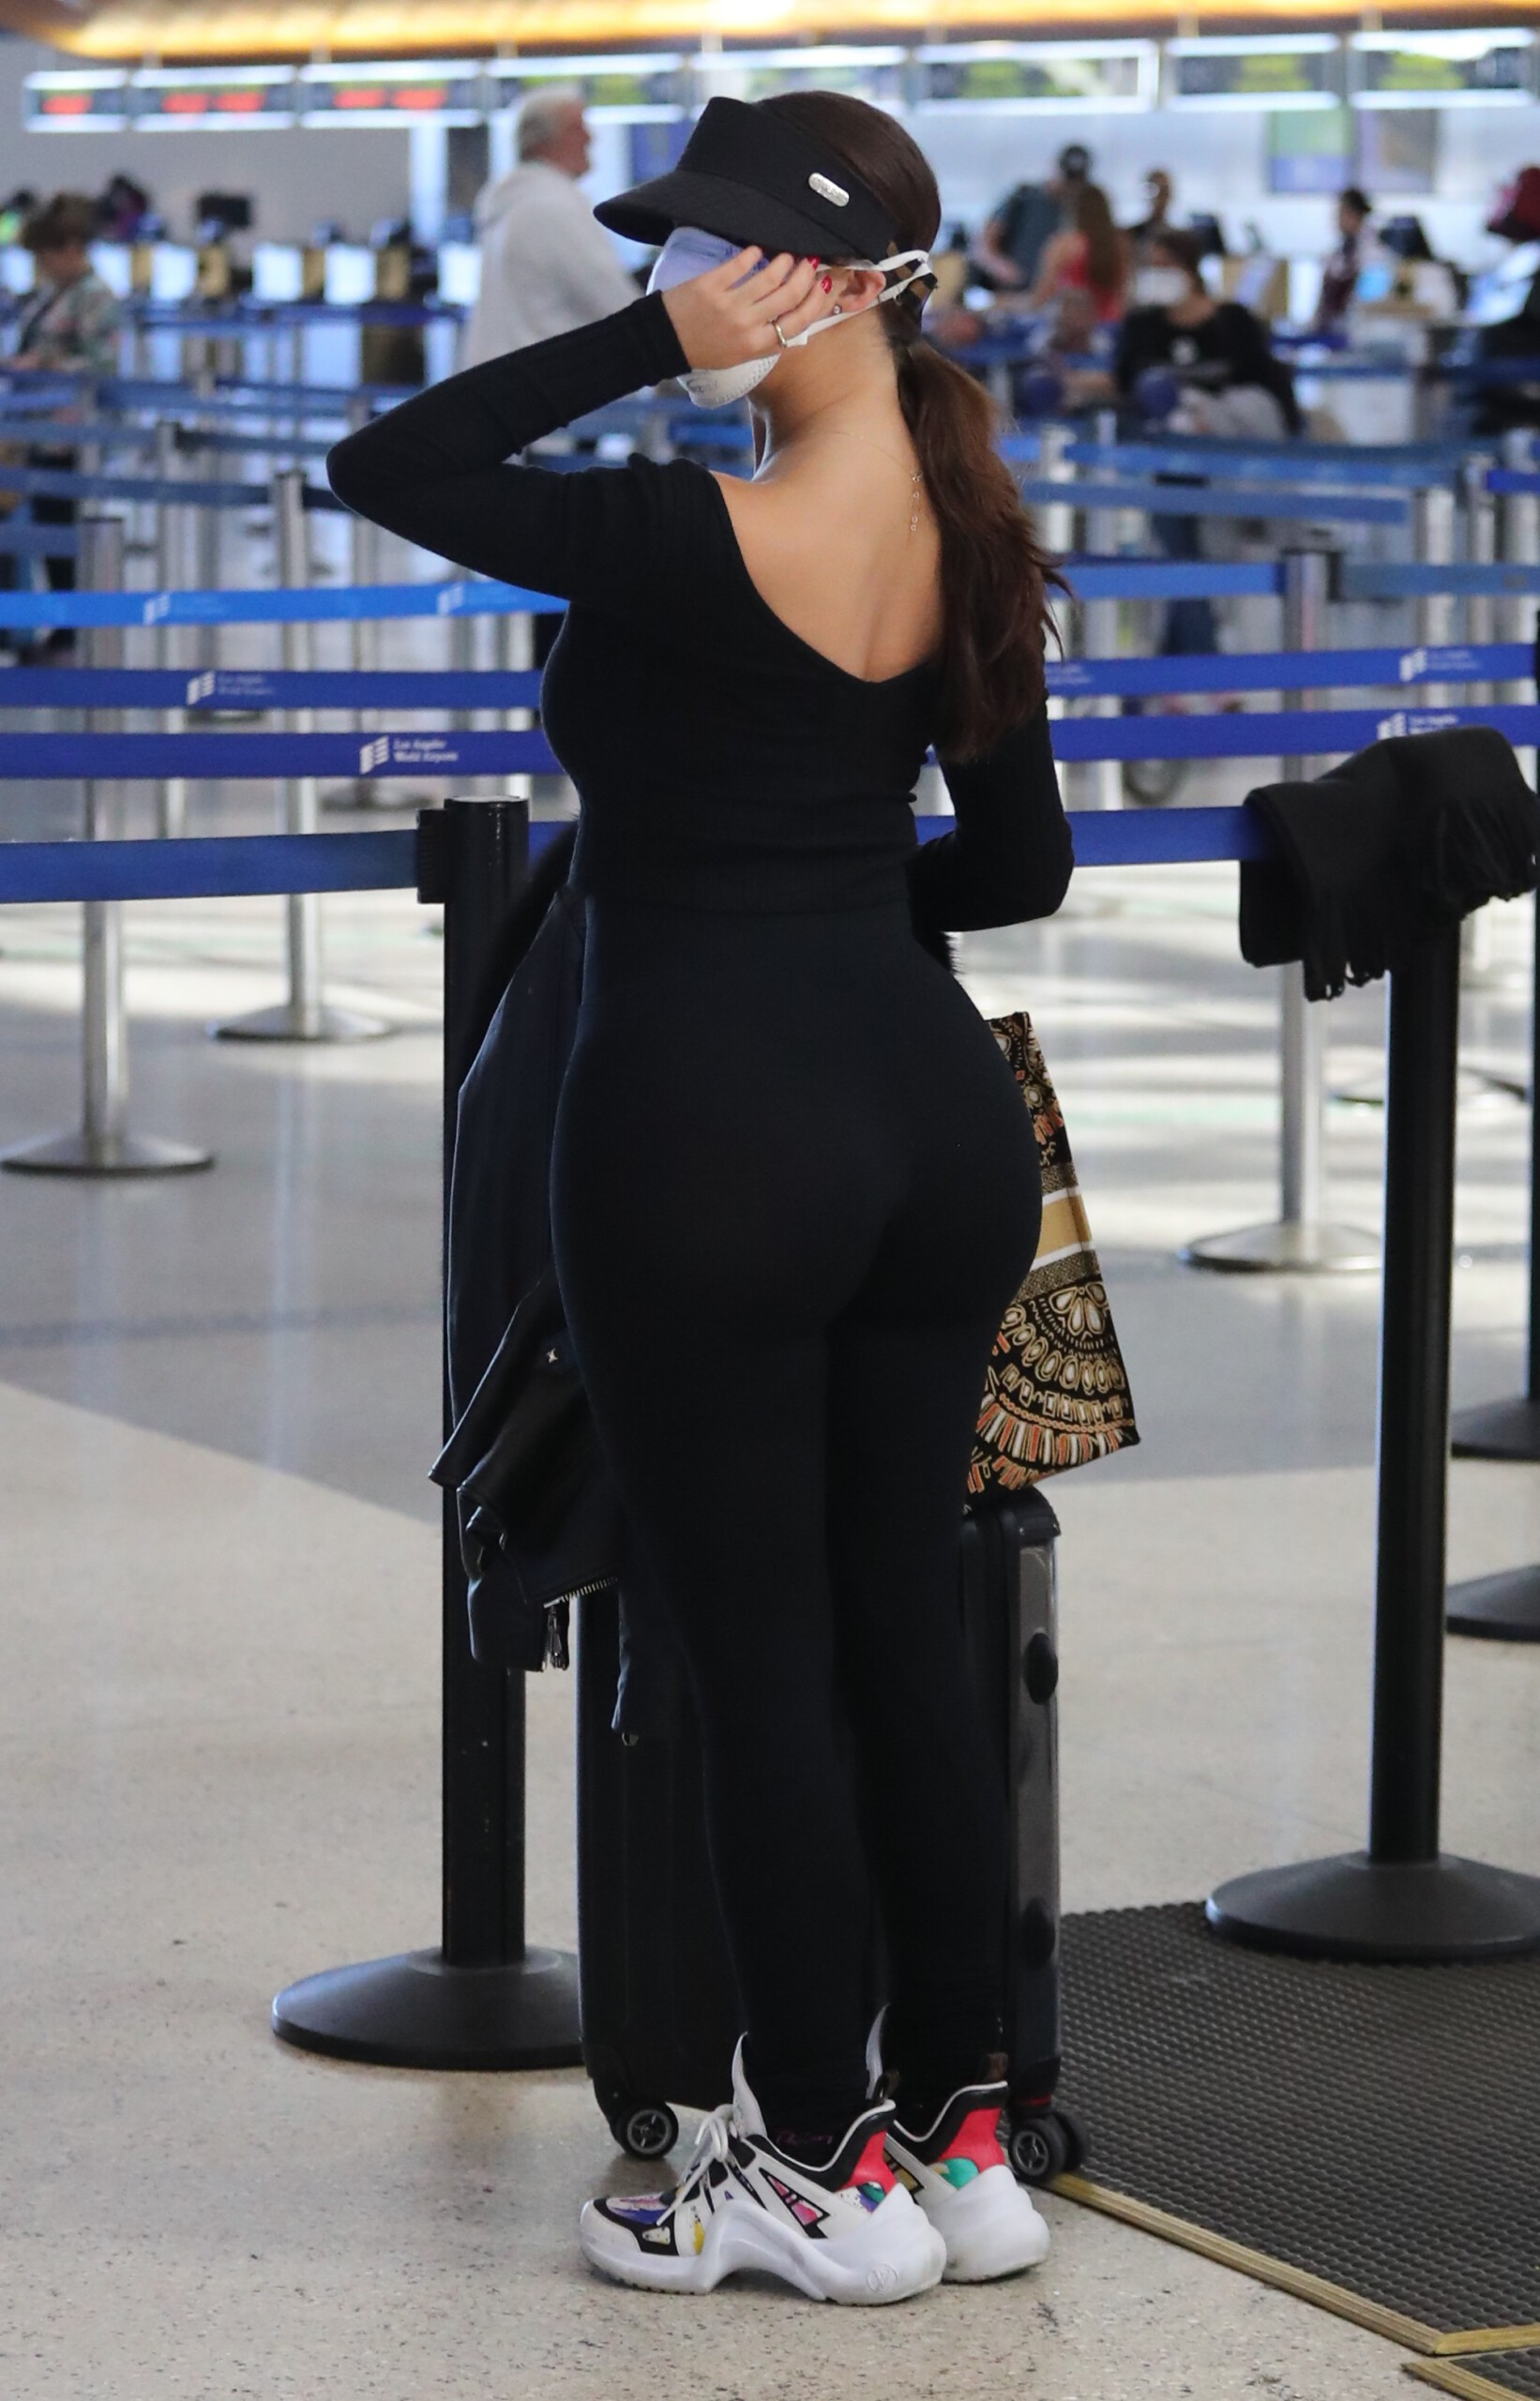 Demi Rose Mawby Huge Ass In Spandex